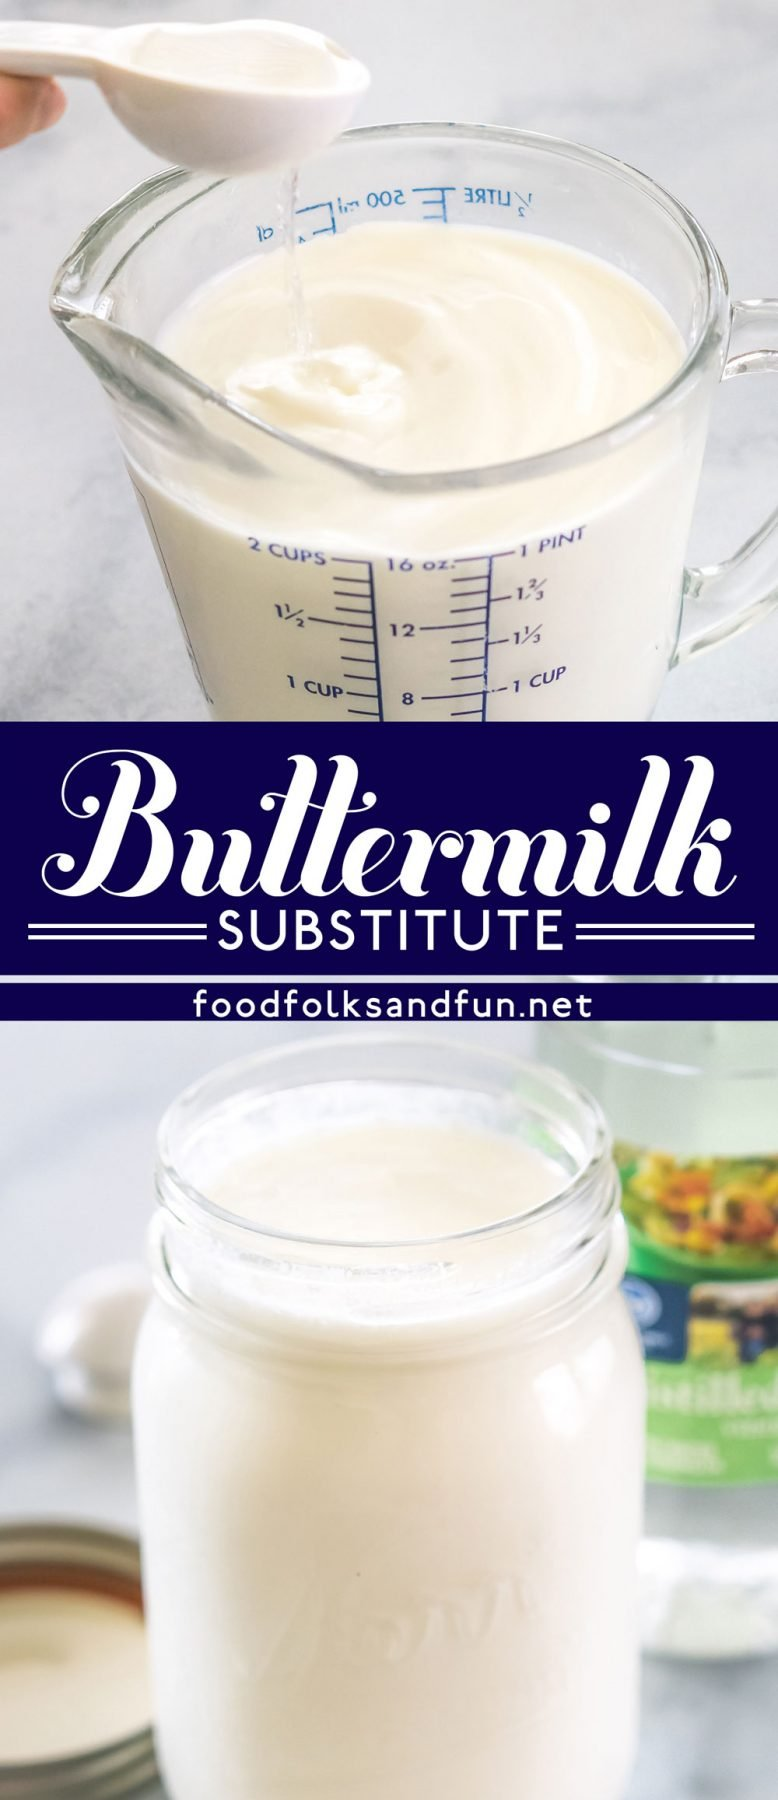 Here's an easy tutorial for How to Make Buttermilk Substitute, and all you need are just 2 ingredients! This substitute for buttermilk is perfect for making tender, flavorful baked goods.